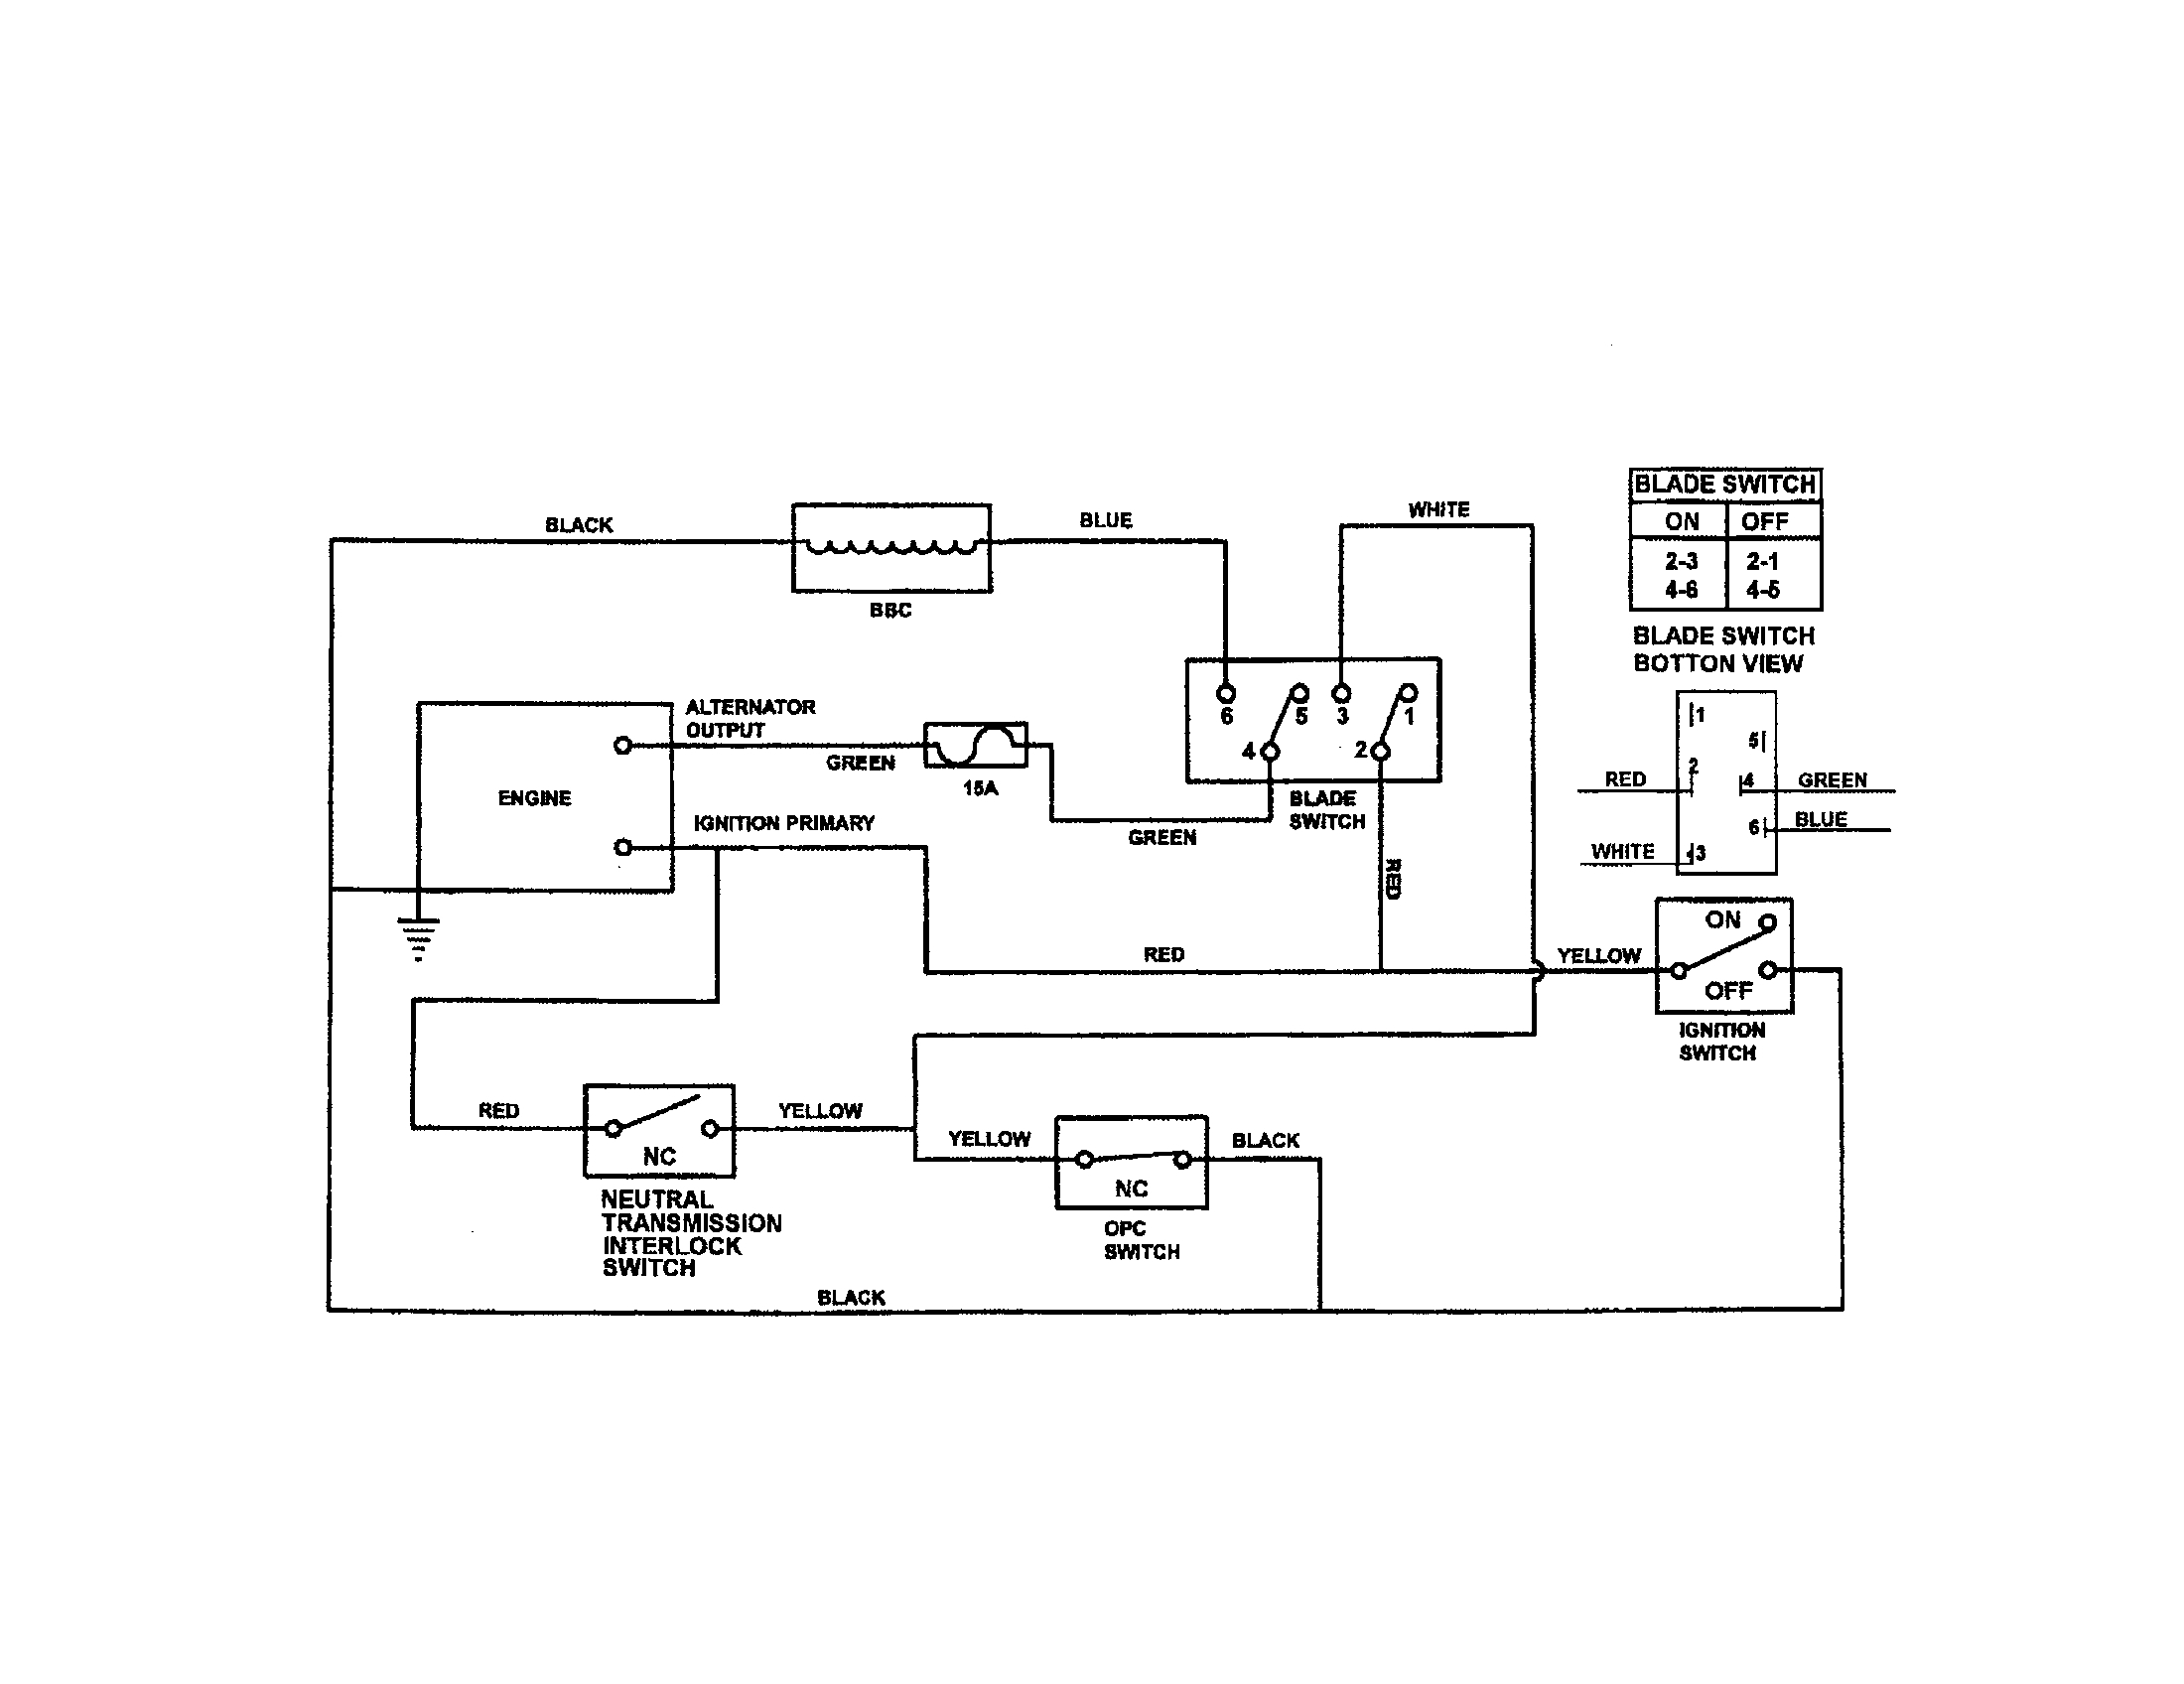 walk in cooler wiring diagram | free wiring diagram commercial walk in freezer wiring diagram